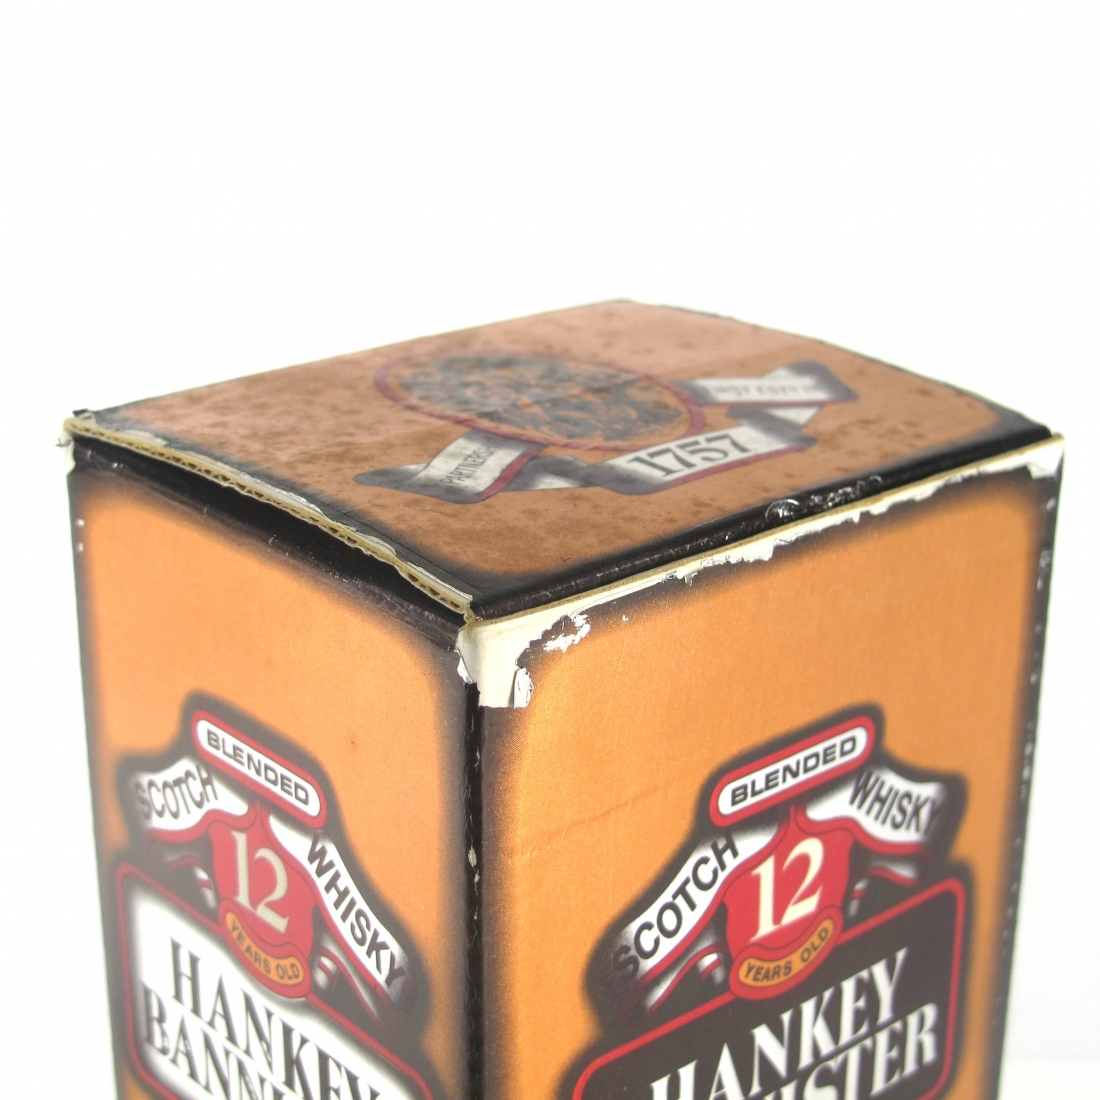 Hankey Bannister 12 Year Old 1970s / Italian Import